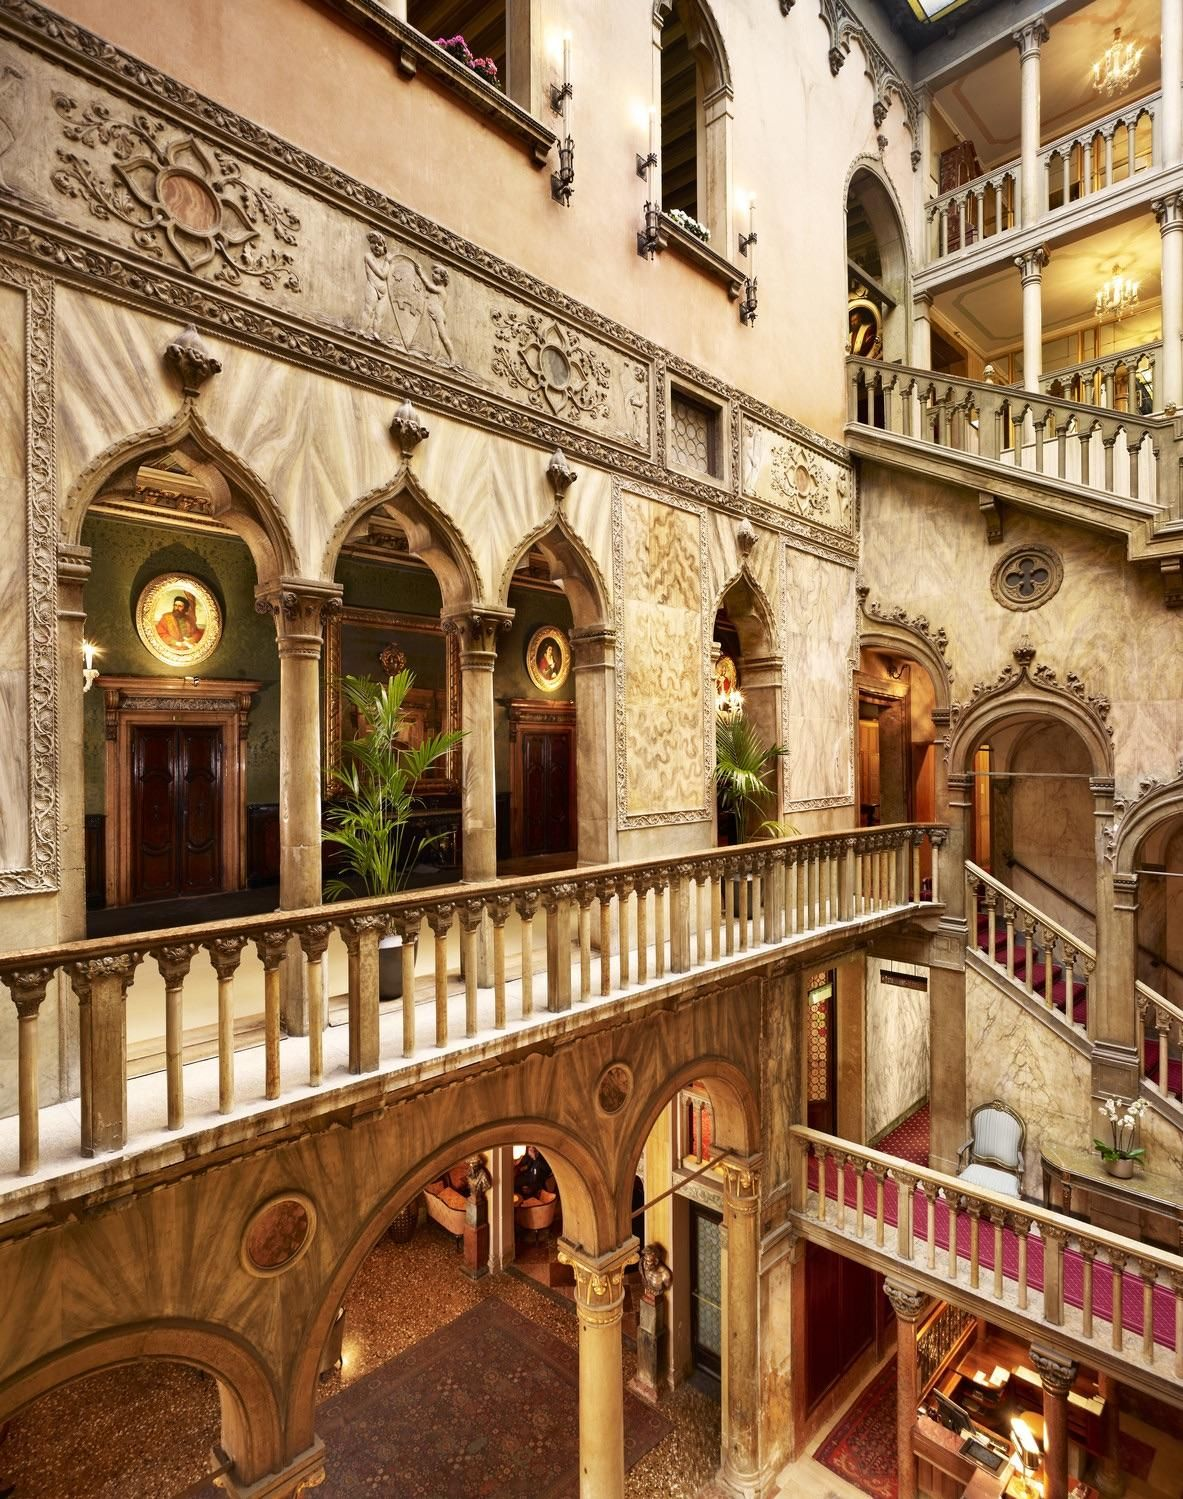 Lobby and Staircase of Hotel Danieli in Venice Italy ...